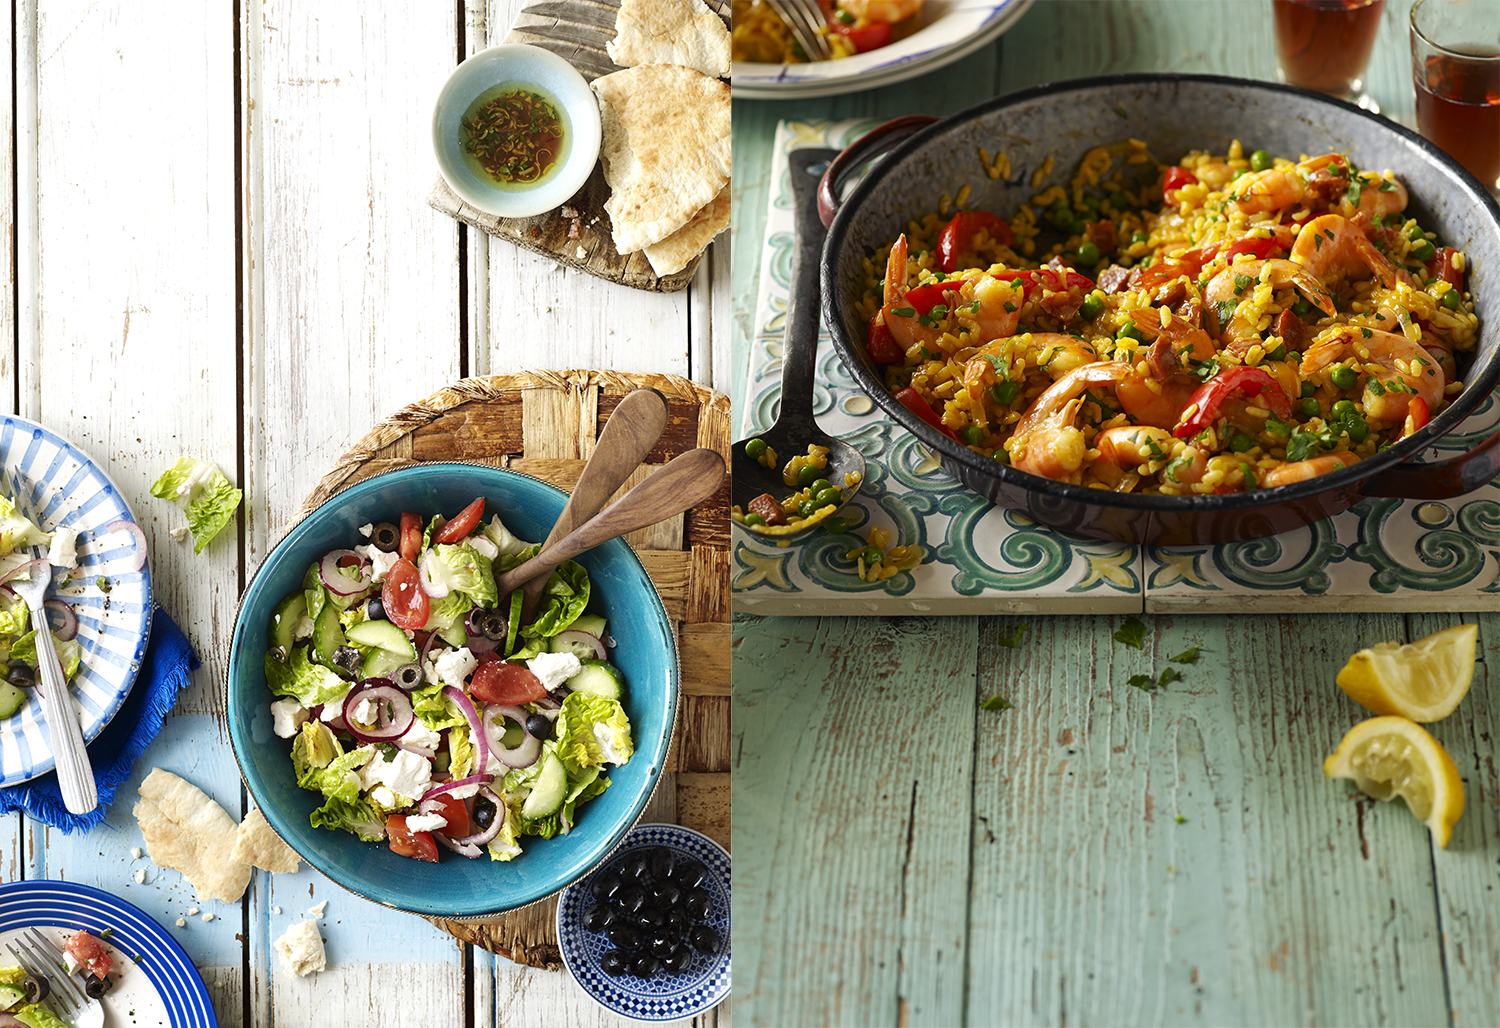 Weight Watchers Magazine- Around the world in 8 ProPoints - photos 3&4 - Food Photography by Lauren Mclean